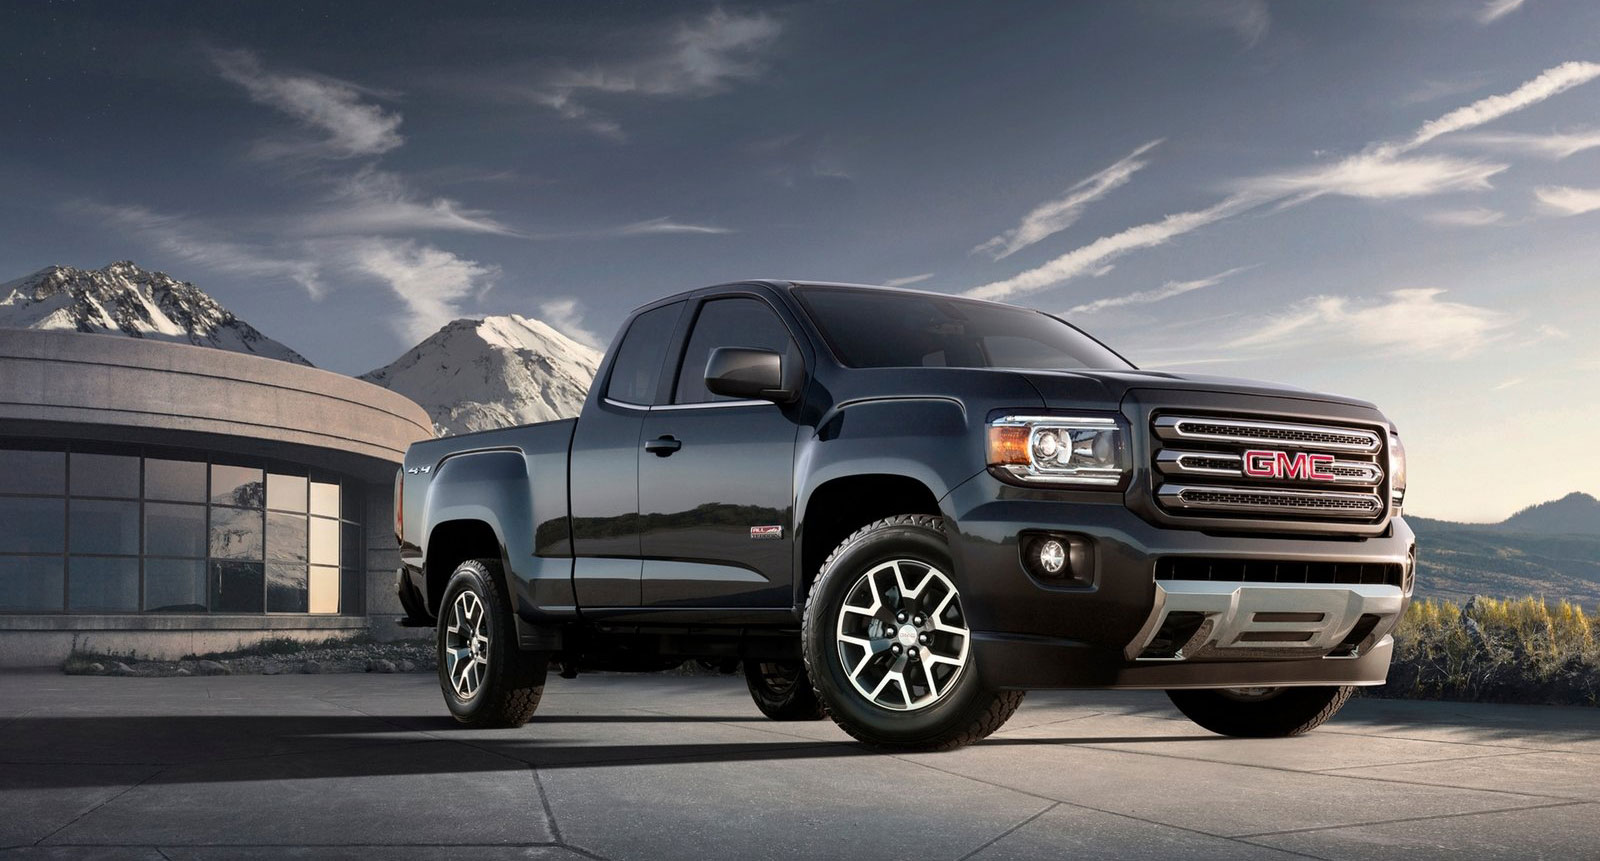 Off Road Cars Hd Wallpapers 2015 Gmc Canyon Macho Mid Size American Truck Paul Tan